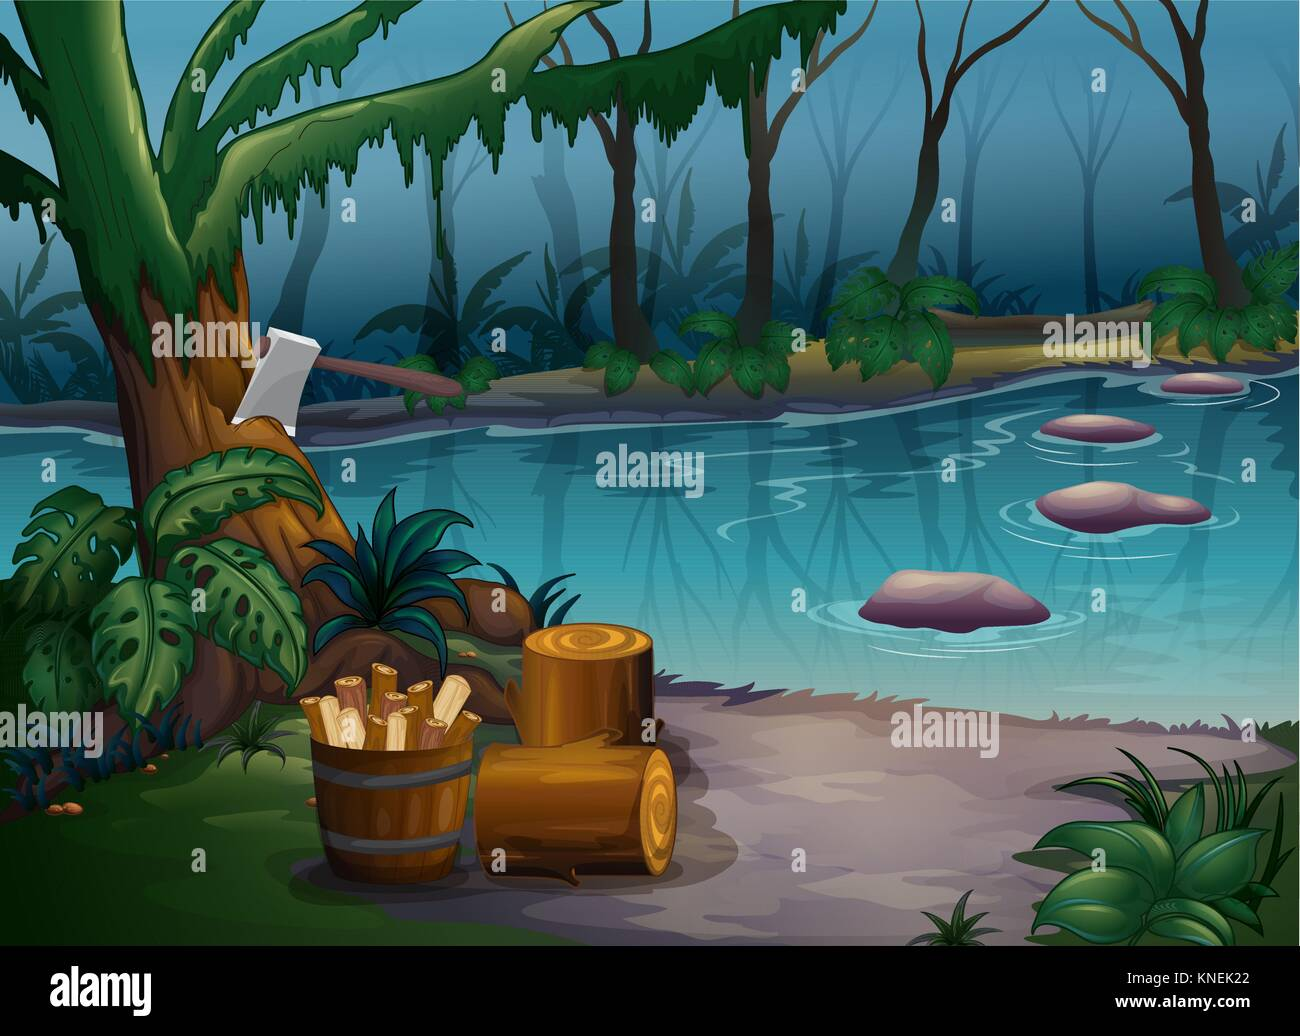 Illustration of a mysterious forest and a river - Stock Vector